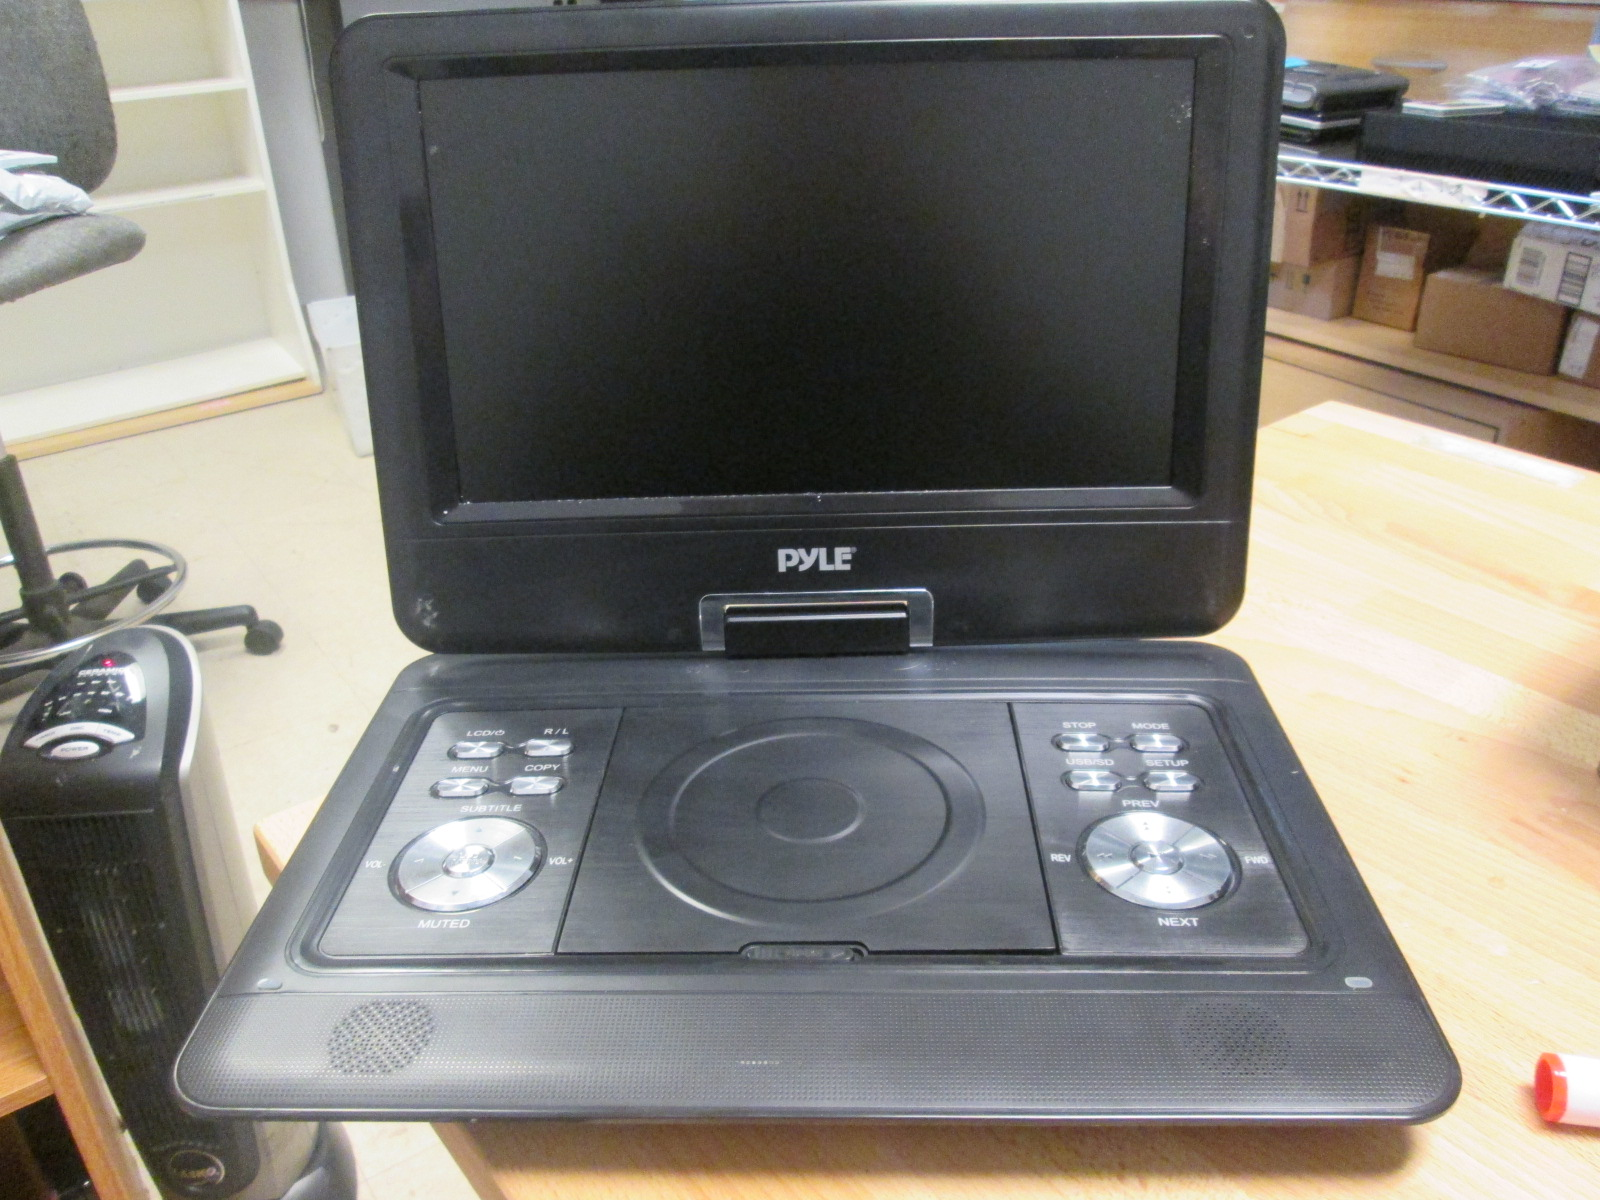 Broken Pyle Portable DVD CD Player 14 Inch Incomplete